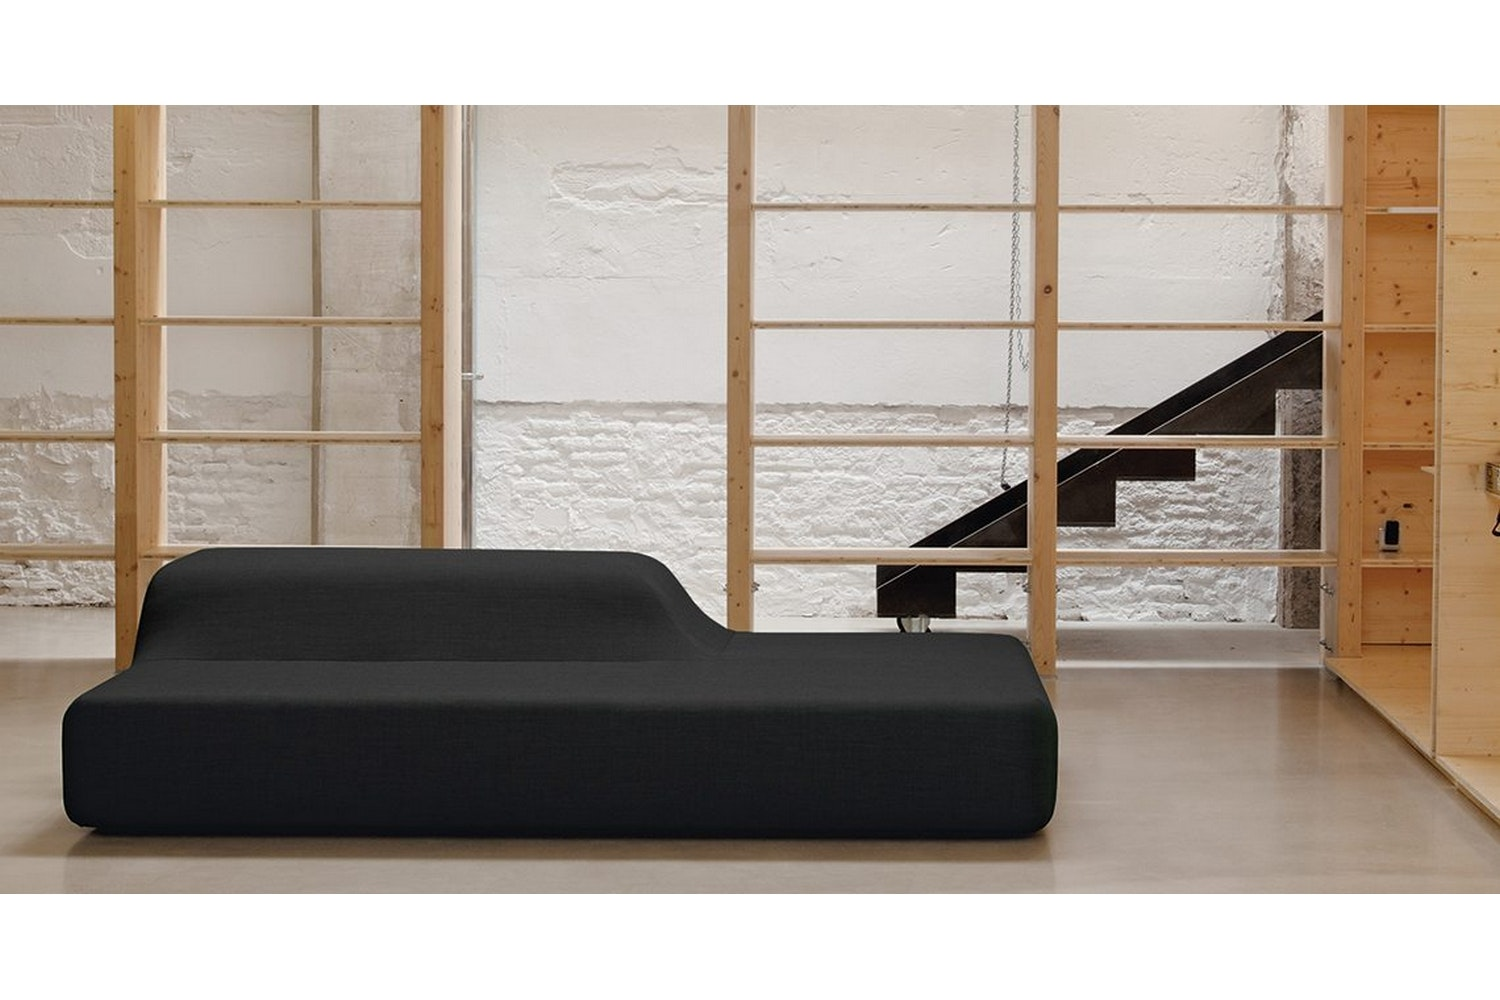 Season Bench by Piero Lissoni for Viccarbe